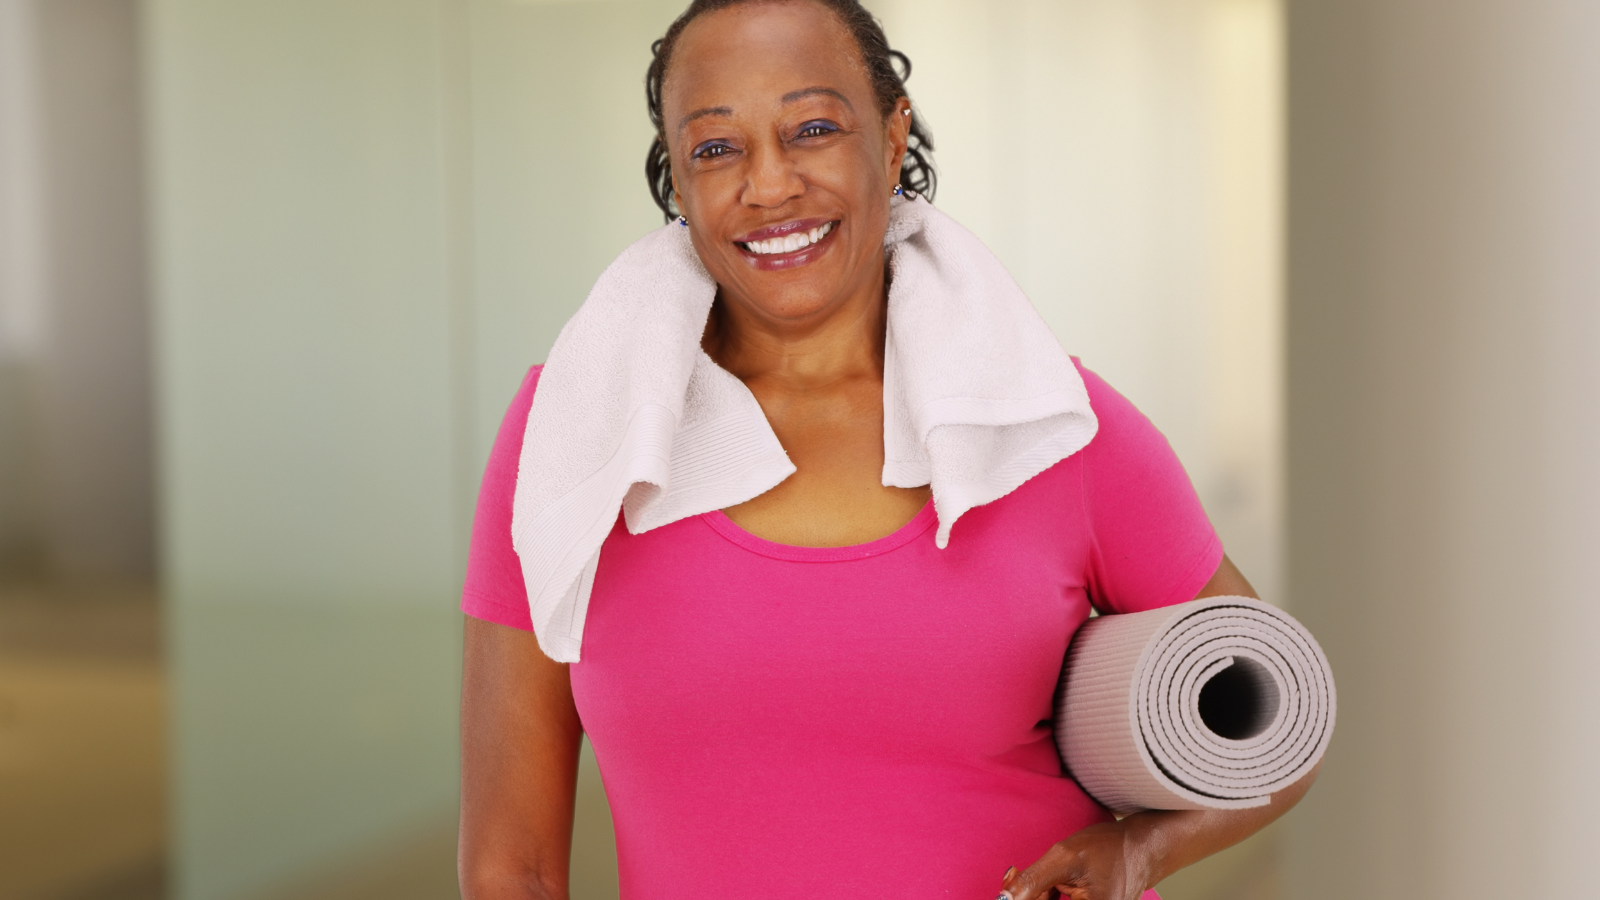 African American woman with genuine smile poses for a portrait after her workout